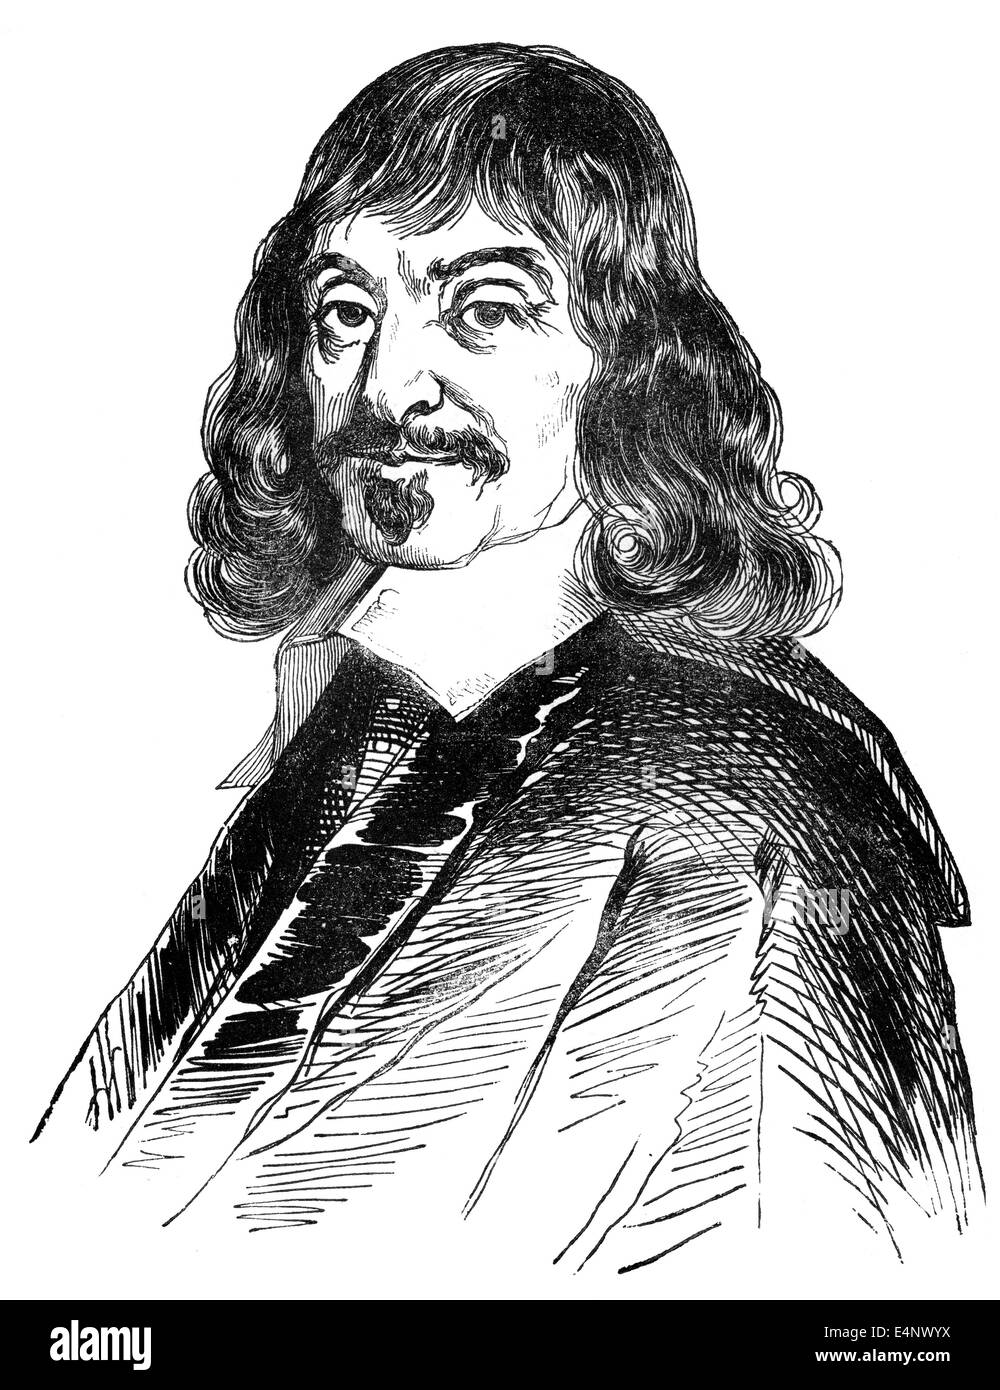 René Descartes or Renatus Cartesius, 1596 - 1650, a French philosopher, mathematician and scientist, Stock Photo